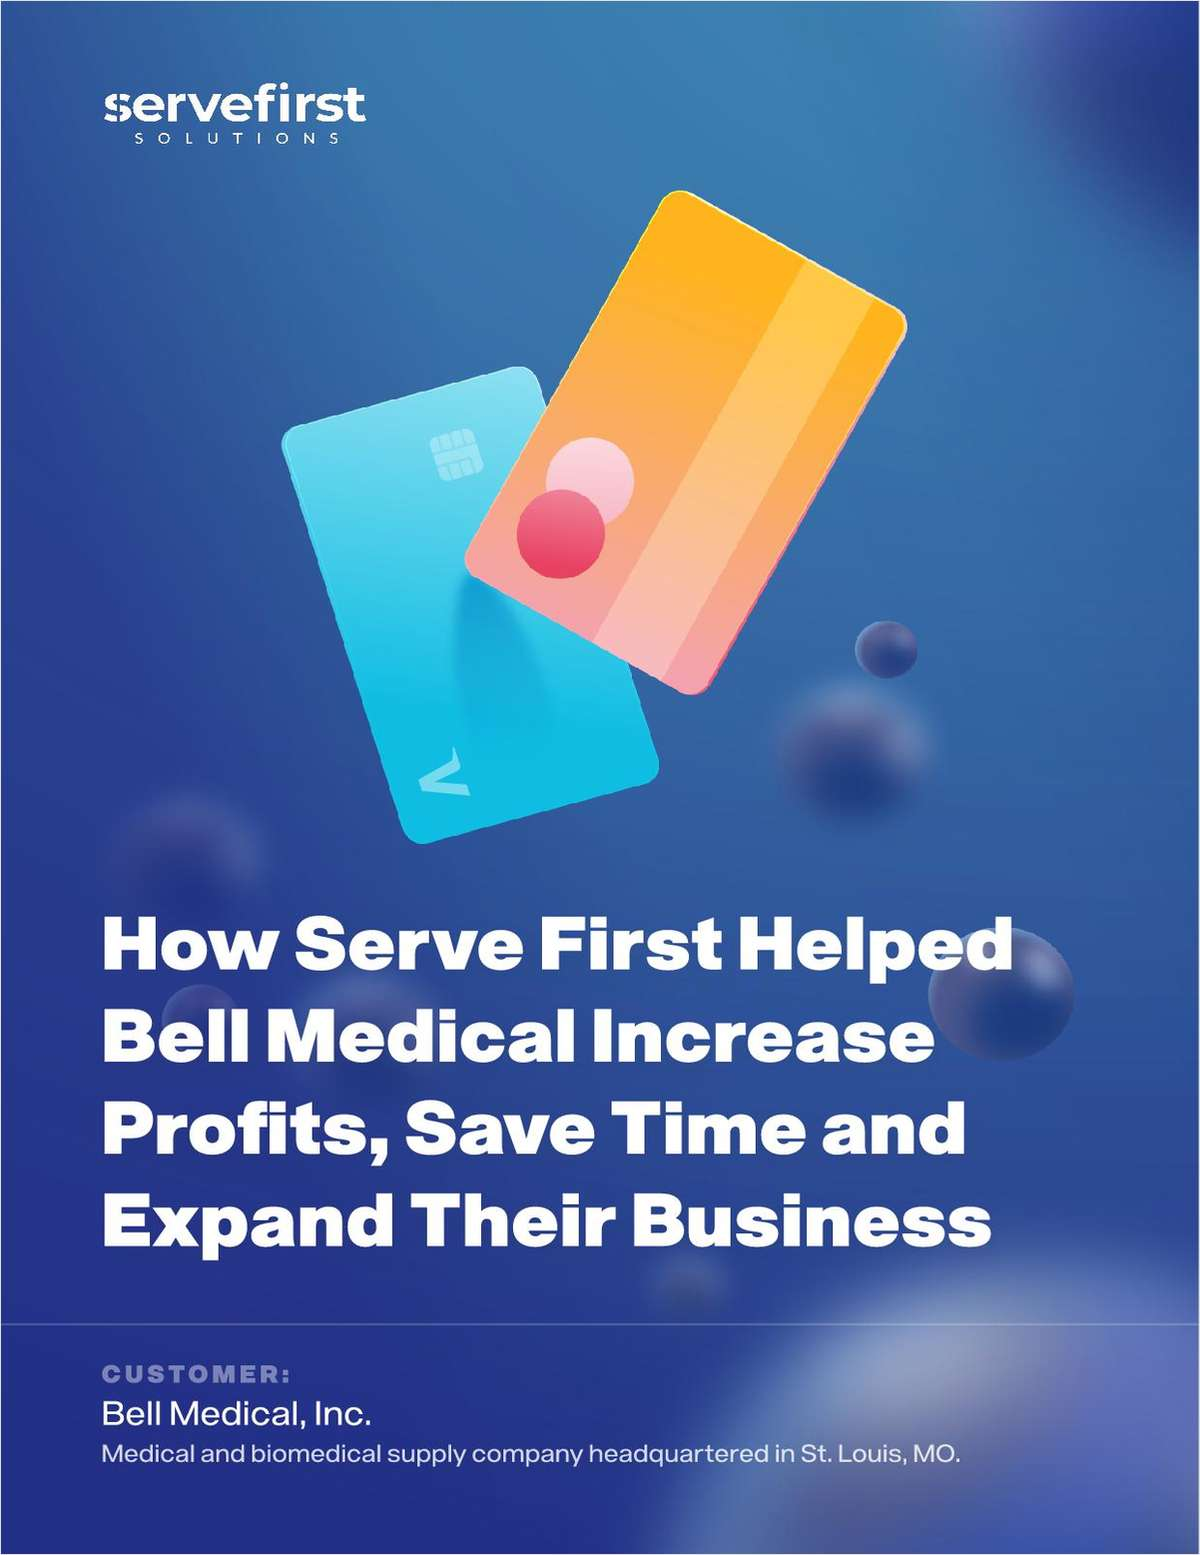 Case study: Increasing Profits and Saving Time With Better Payment Processing